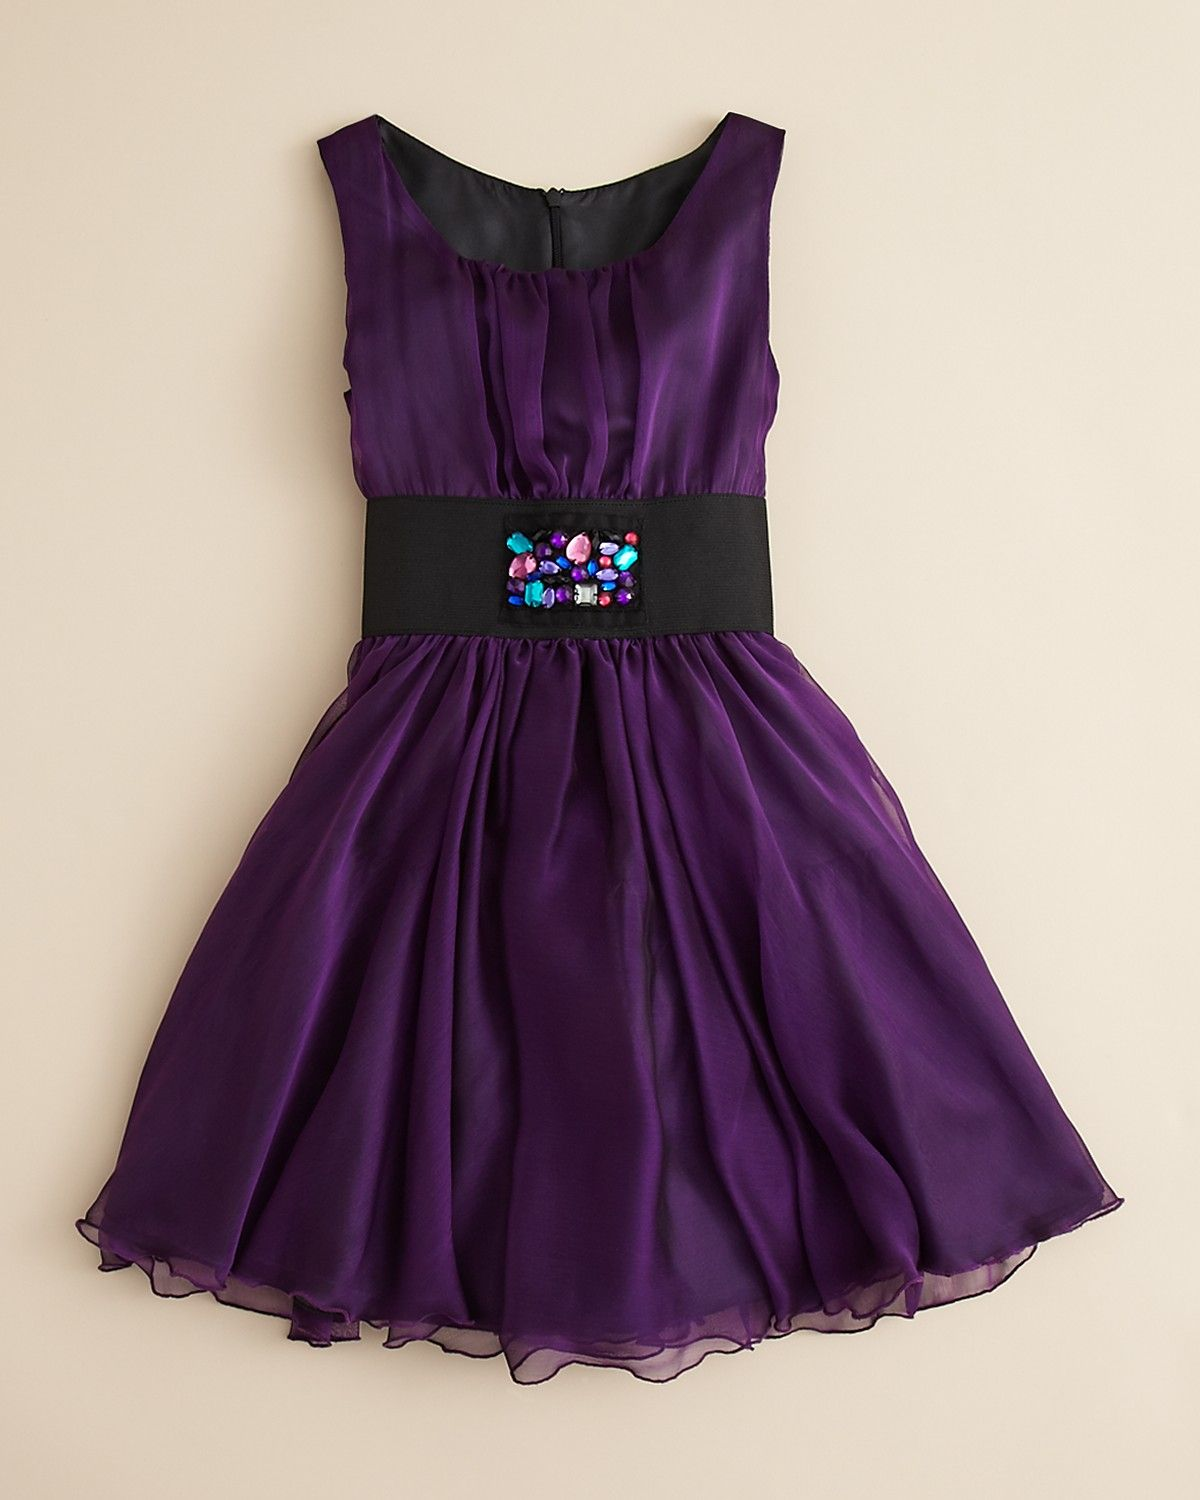 girl dresses 7-16 | by Zoe Girls' Chiffon Jeweled Dress - Sizes 7 ...